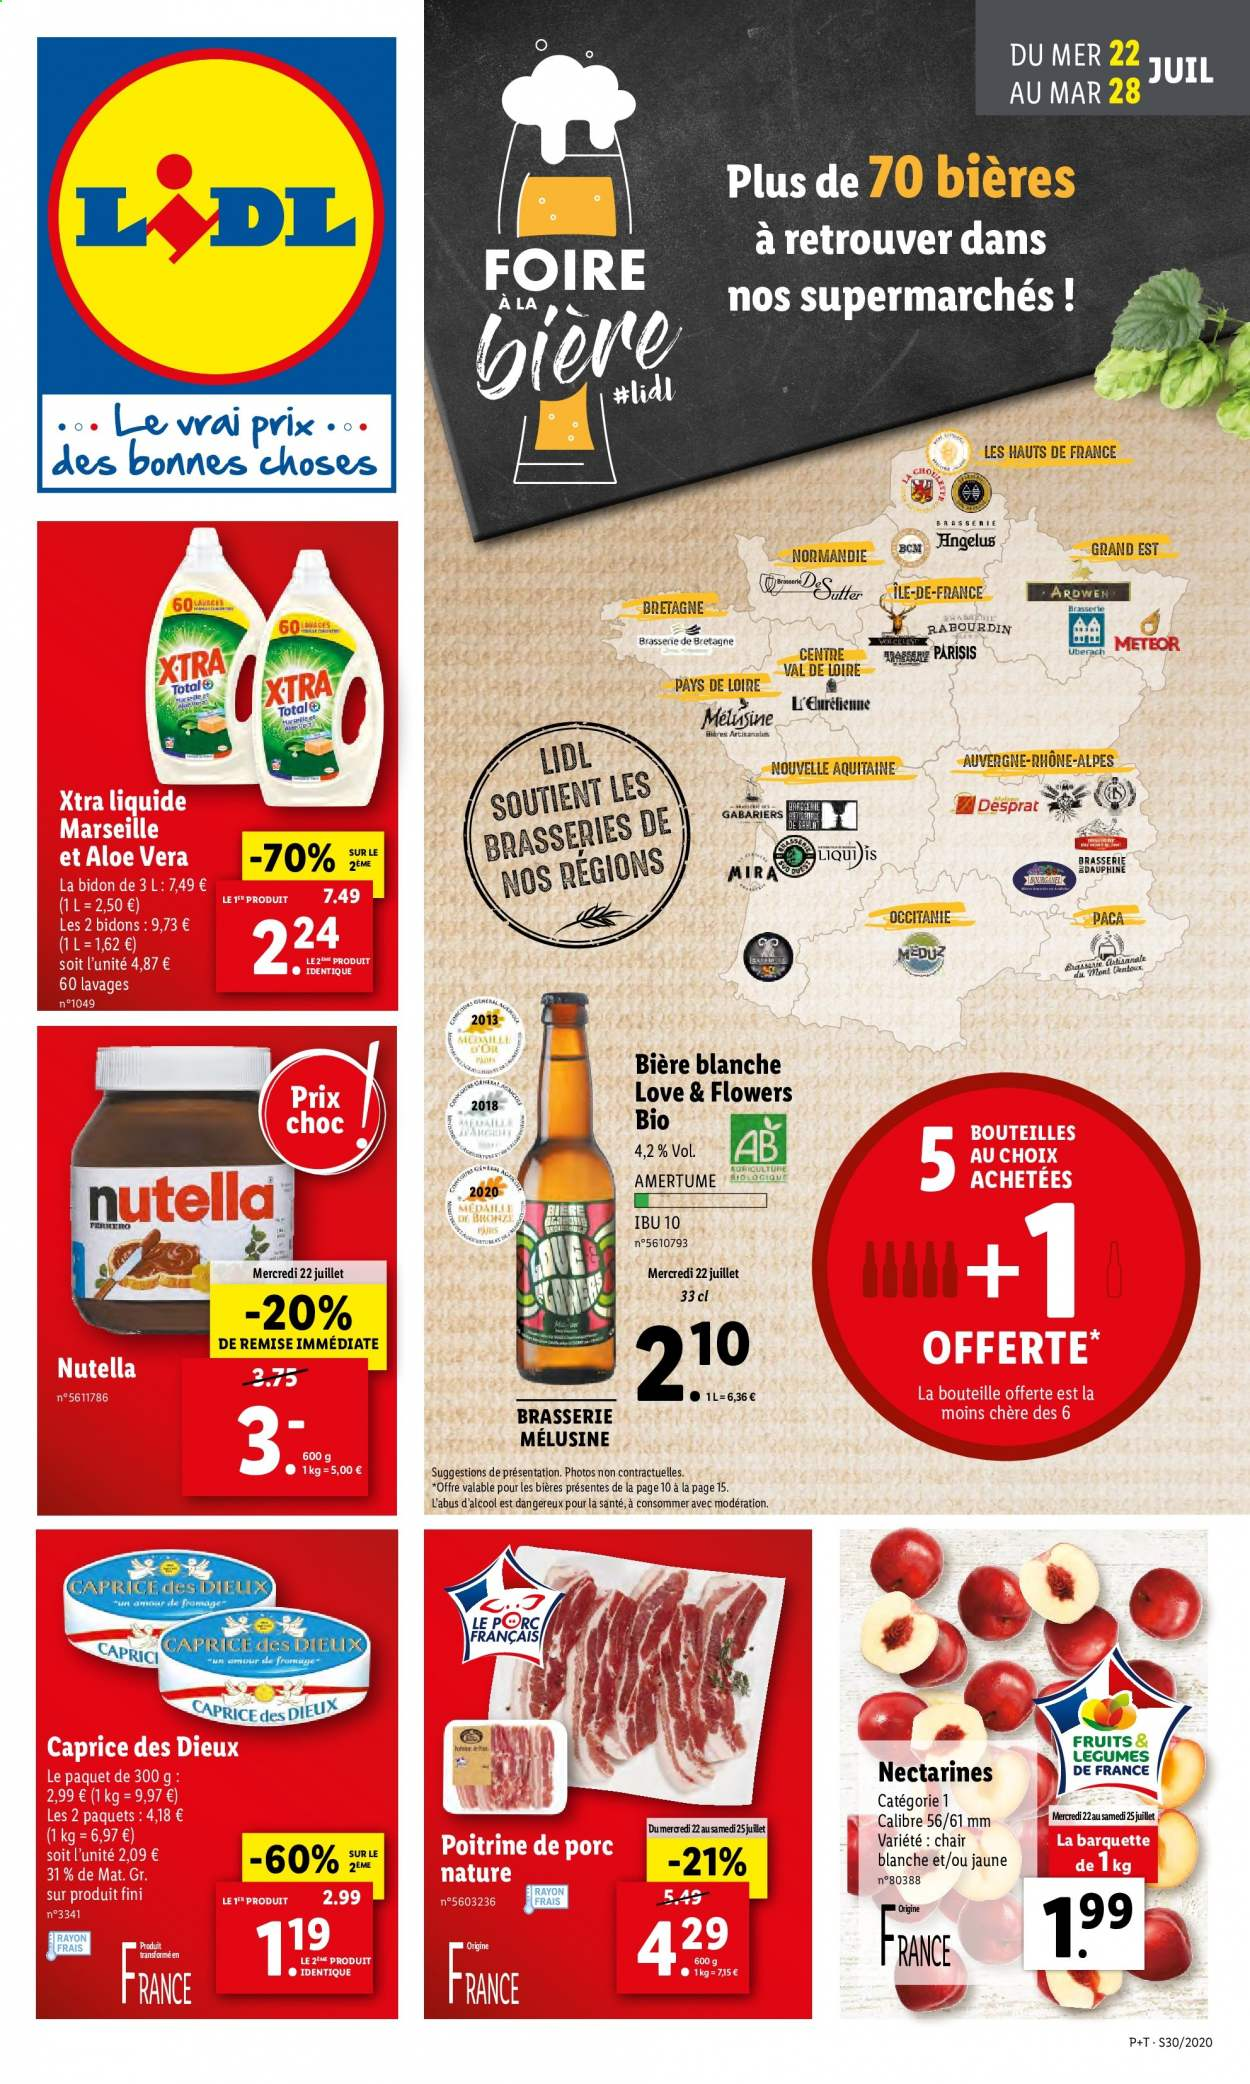 Catalogue Lidl - 22.07.2020 - 28.07.2020. Page 1.